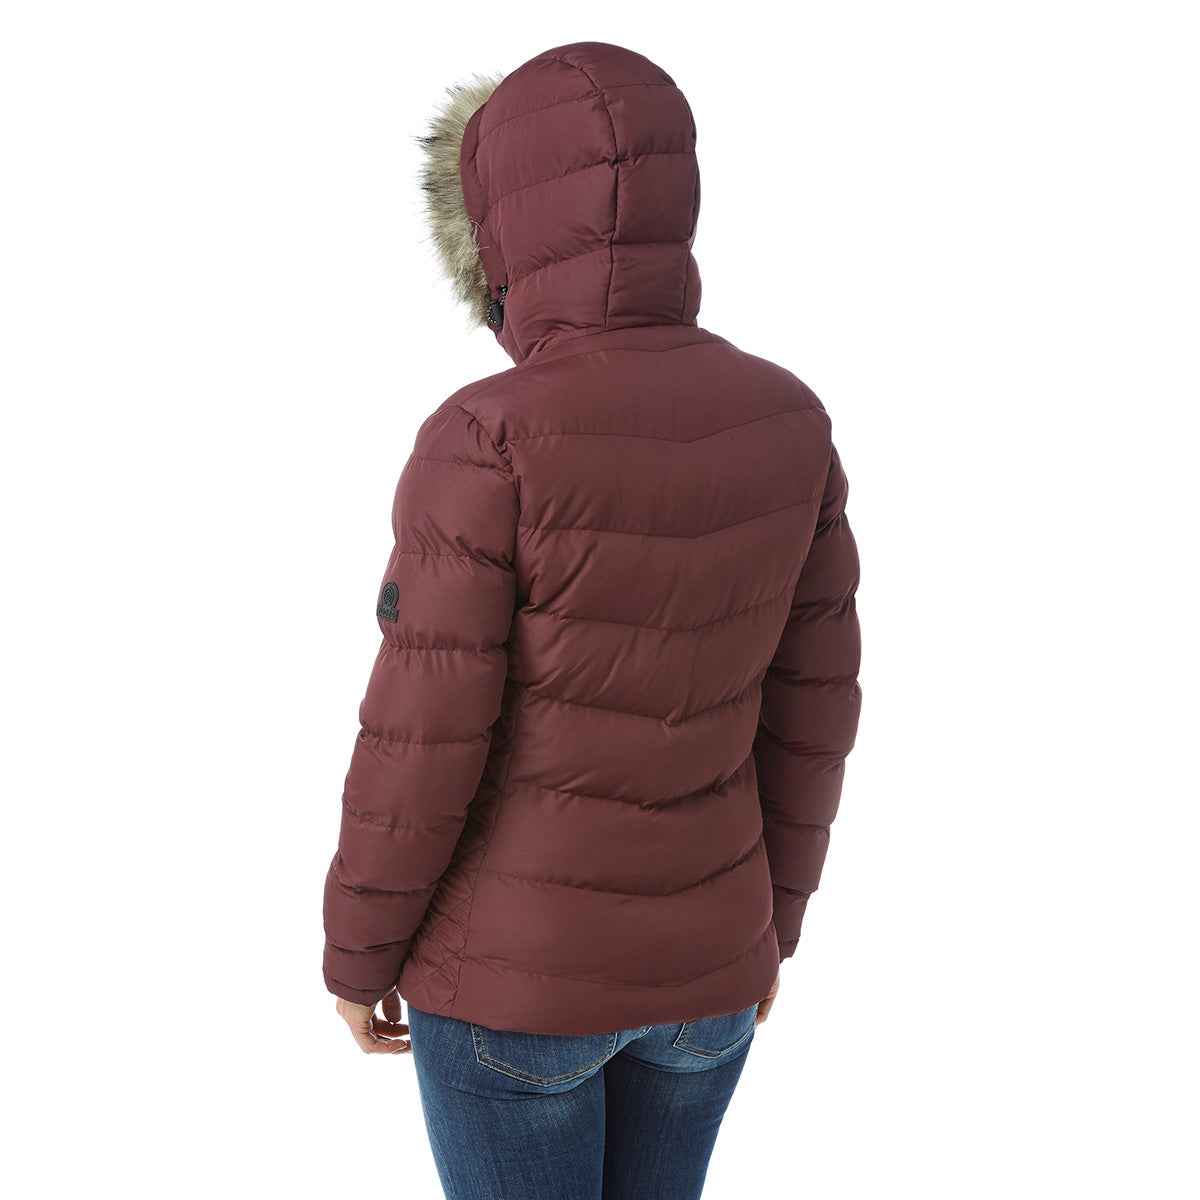 Bartle Womens Insulated Jacket - Deep Port image 4